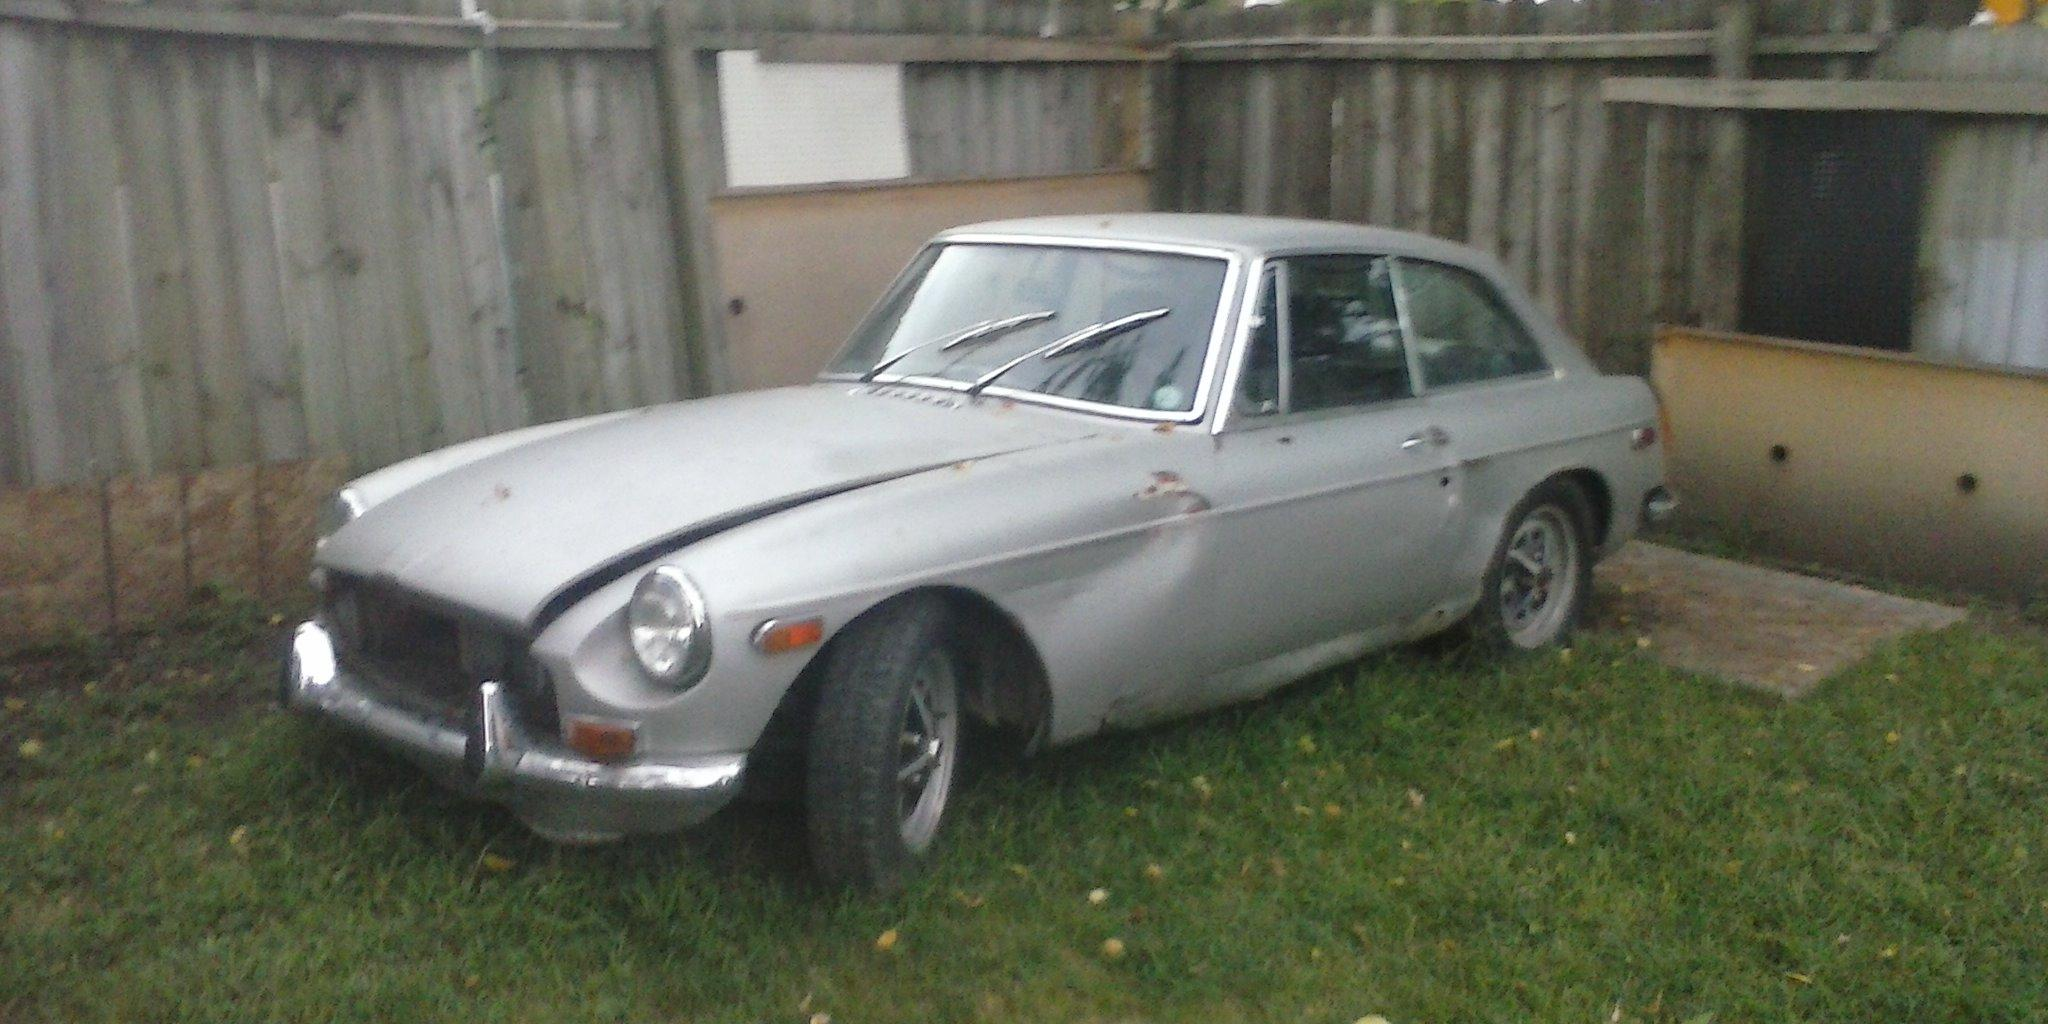 allans_monster_garage 1973 MG MGB